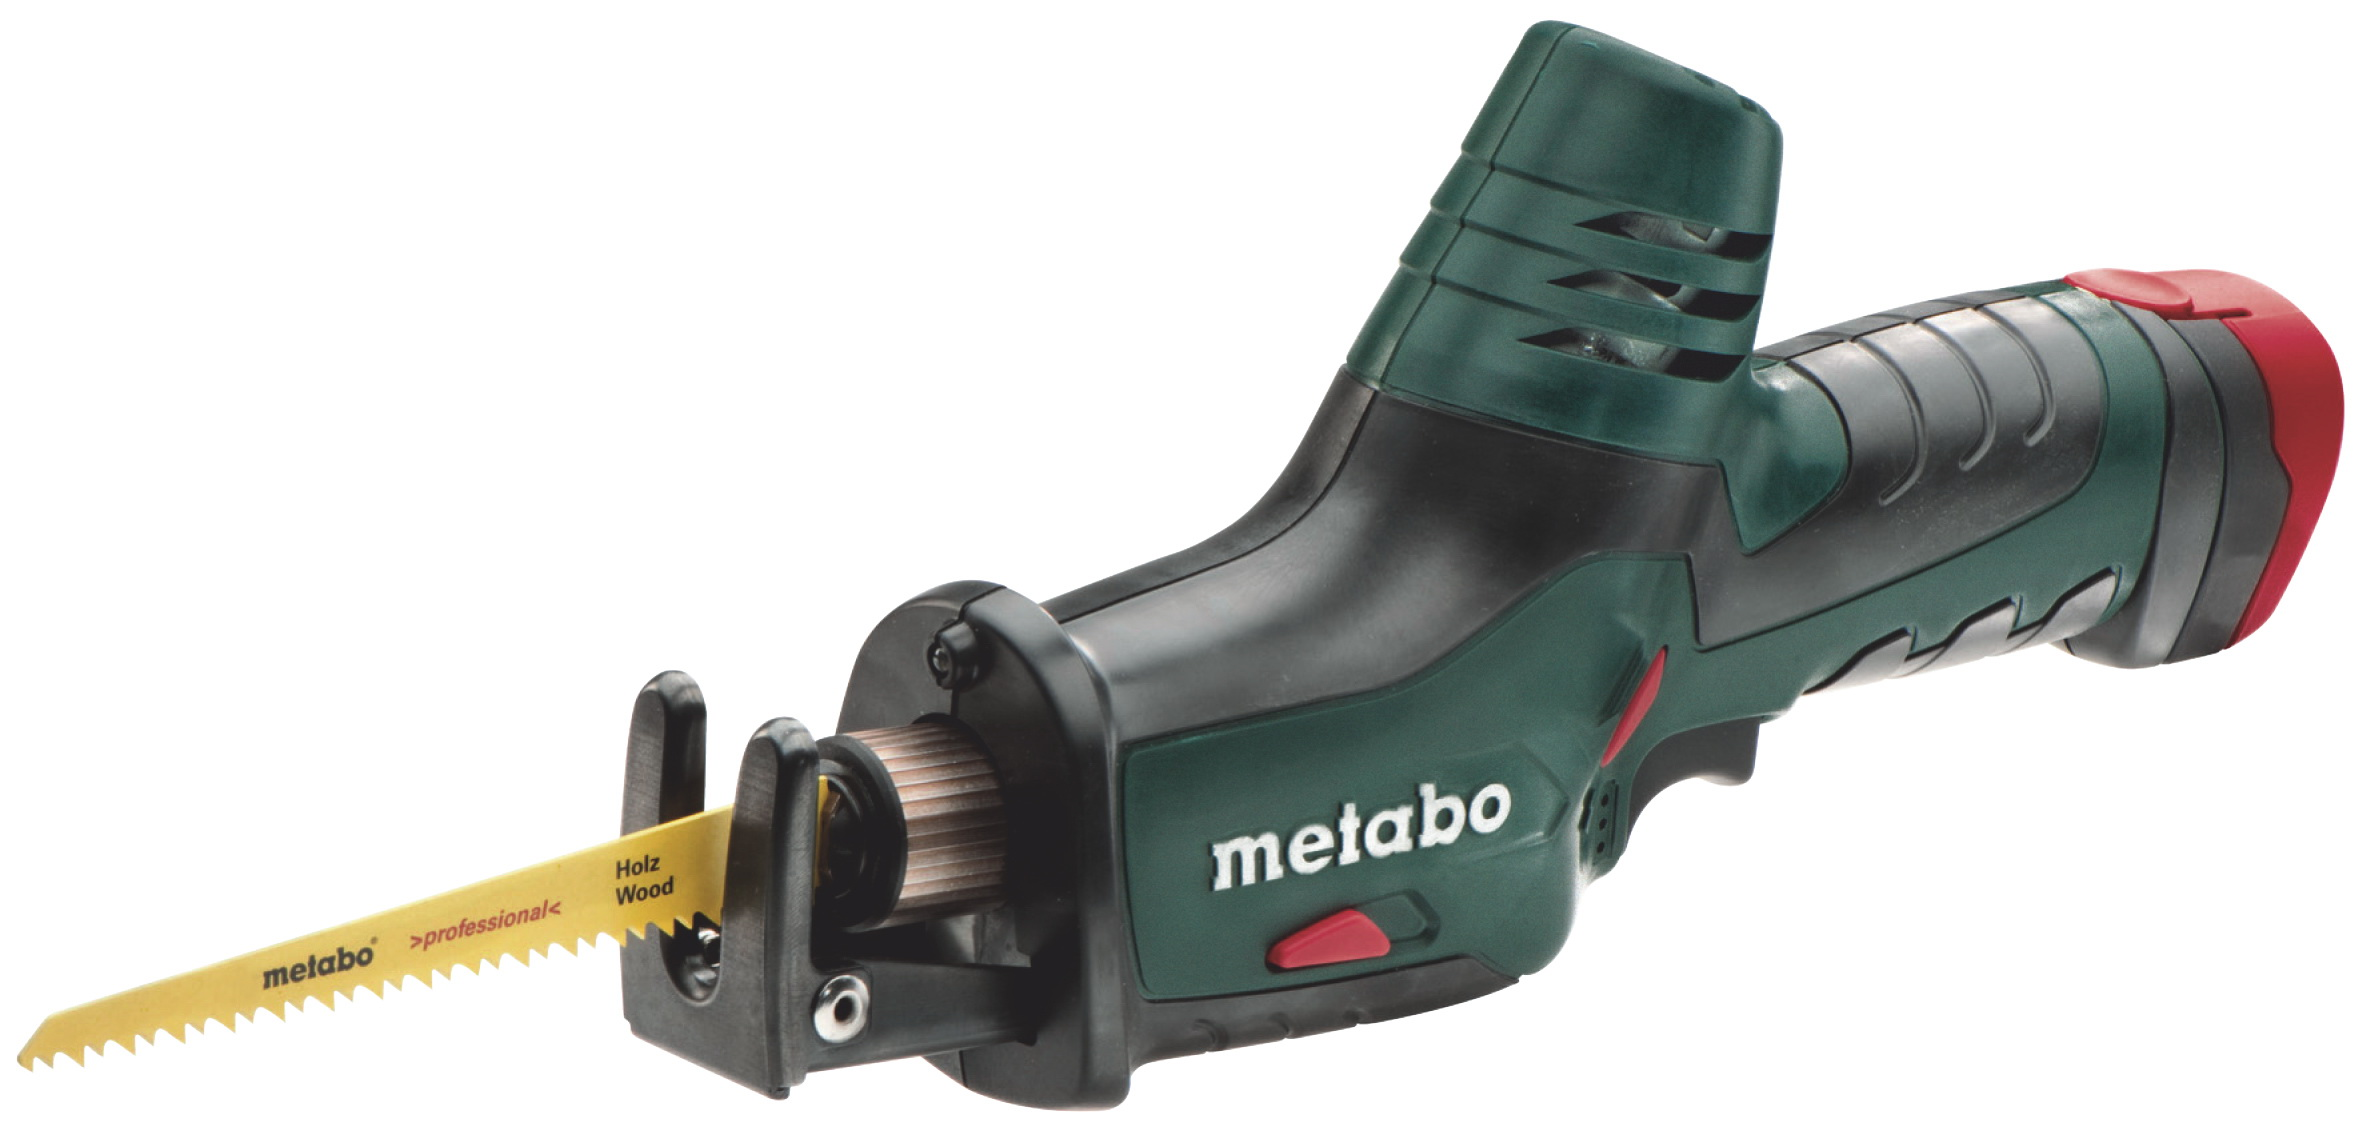 �������������� ������� Metabo Powermaxx ase ��������������